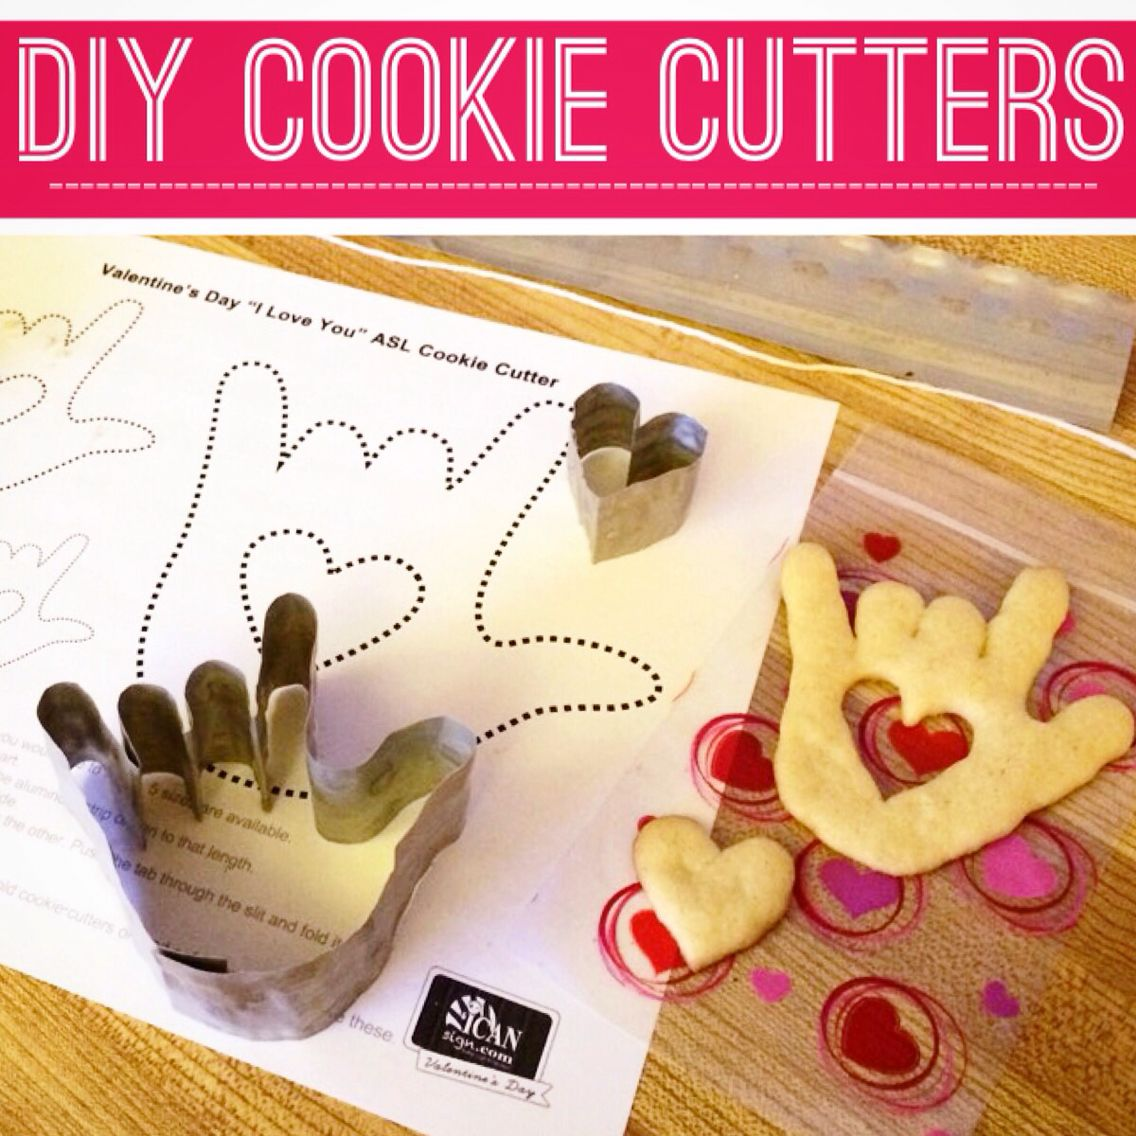 Diy Cookie Cutter  Asl Sign For